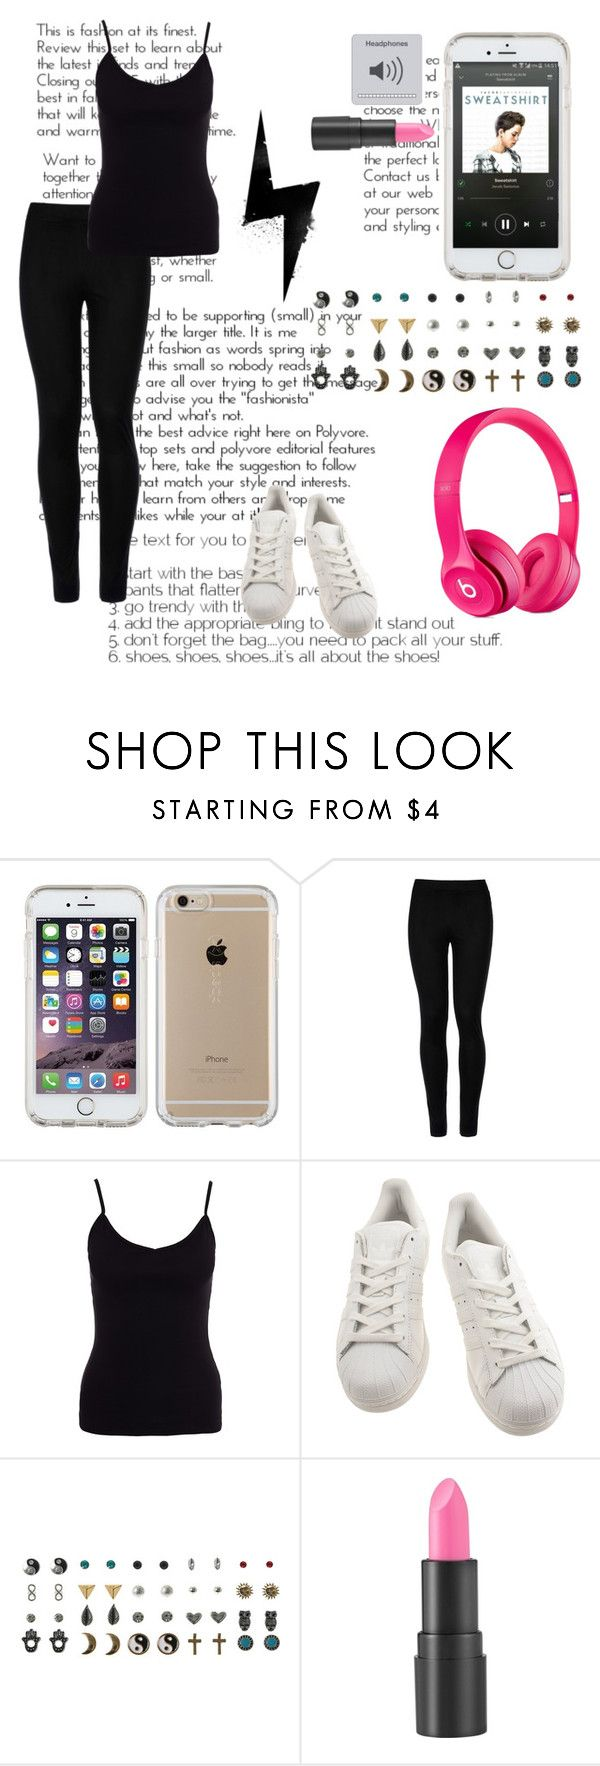 """""""Listening To Swaetshirt {Jacob Sartorius-Sweatshirt New Album Out!}"""" by donttouchmydrumset ❤ liked on Polyvore featuring Speck, Wolford, New Look, adidas, too cool for school and Beats by Dr. Dre"""